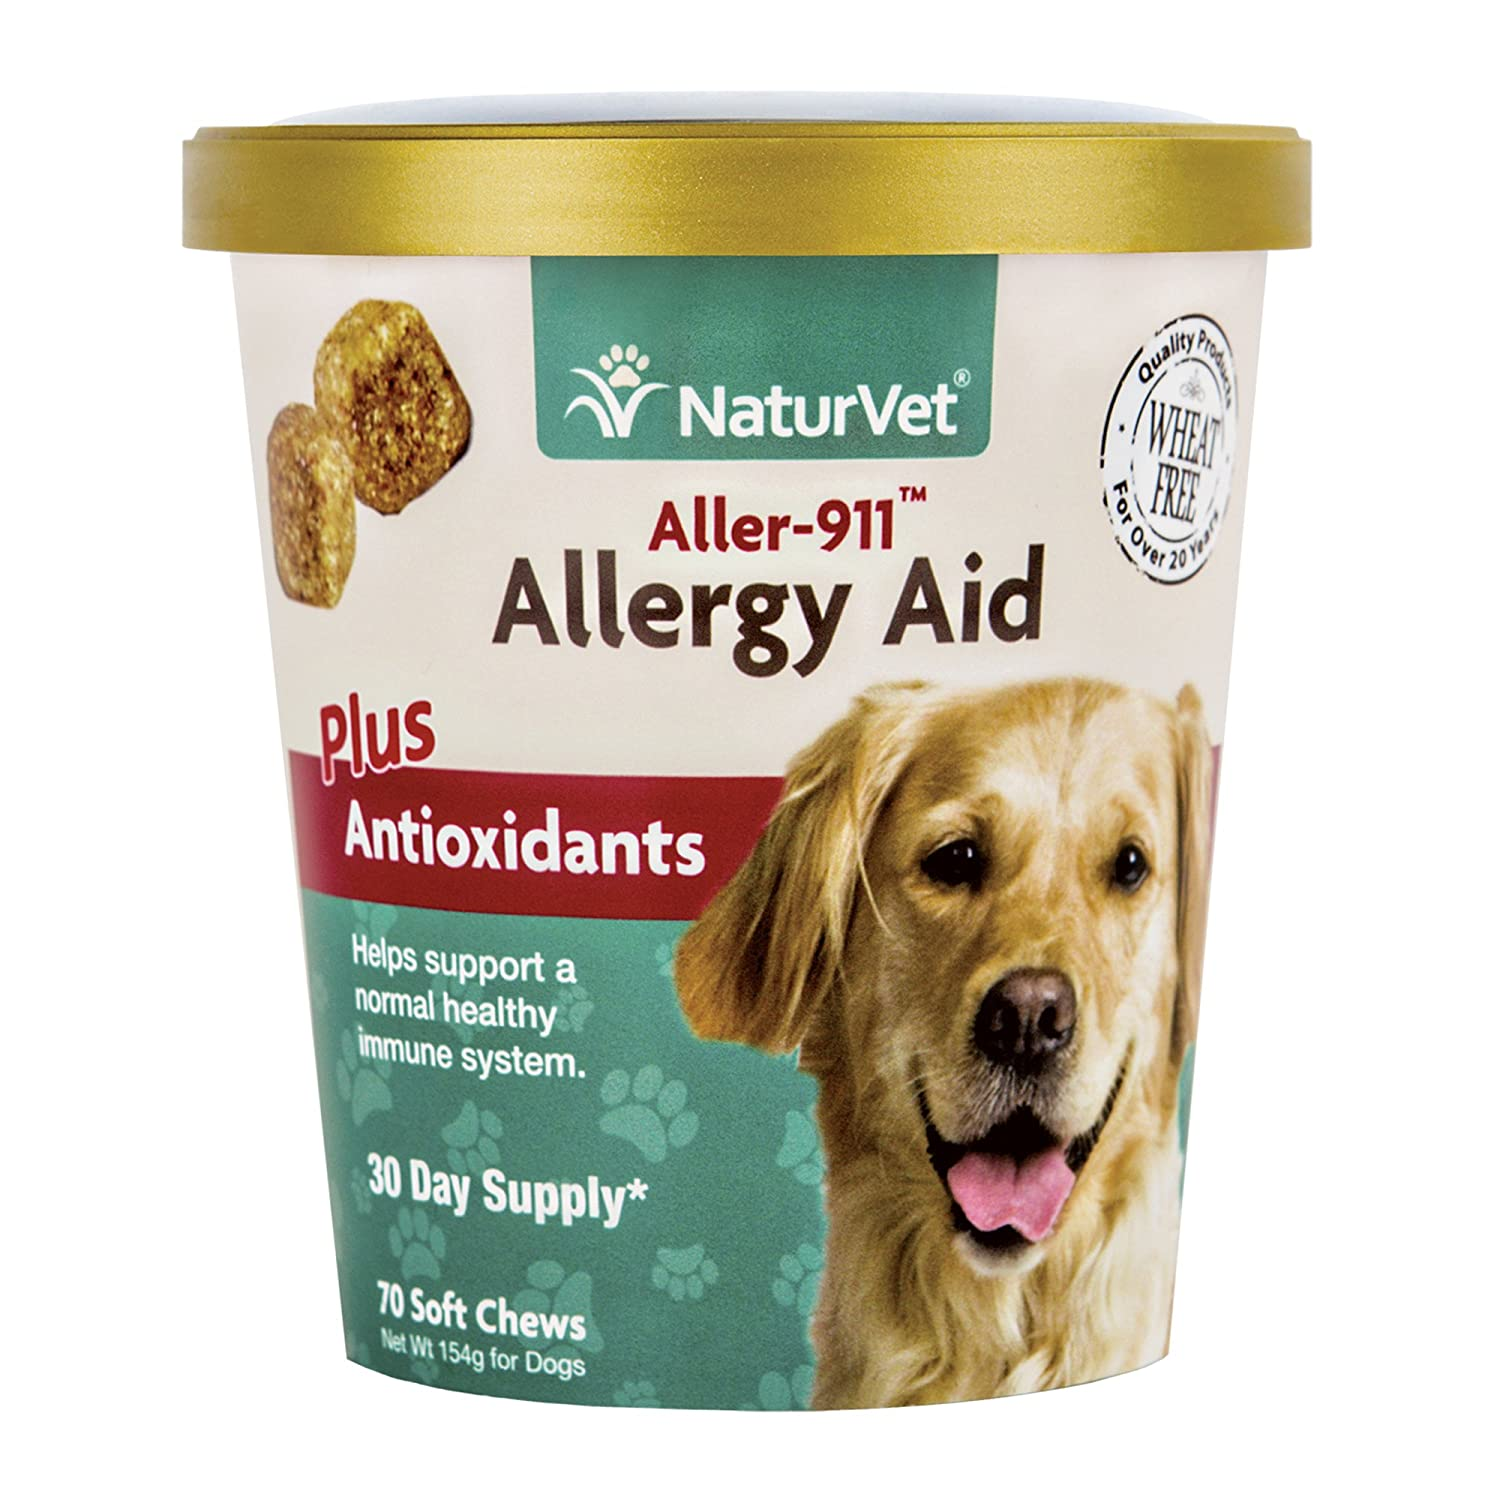 NaturVet Aller-911 Allergy Aid Soft Chews